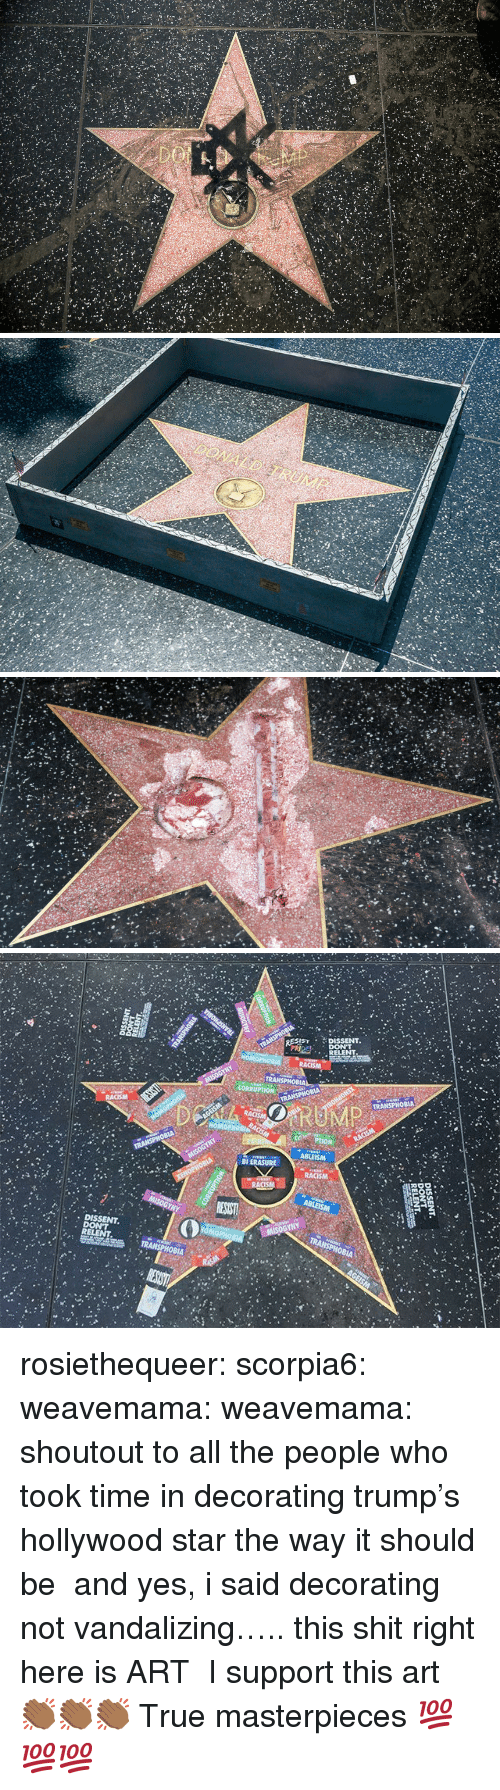 sist: SIST DISSENT  DISSENT rosiethequeer:  scorpia6:  weavemama: weavemama: shoutout to all the people who took time in decorating trump's hollywood star the way it should be and yes, i said decorating not vandalizing….. this shit right here is ART   I support this art 👏🏾👏🏾👏🏾  True masterpieces 💯💯💯